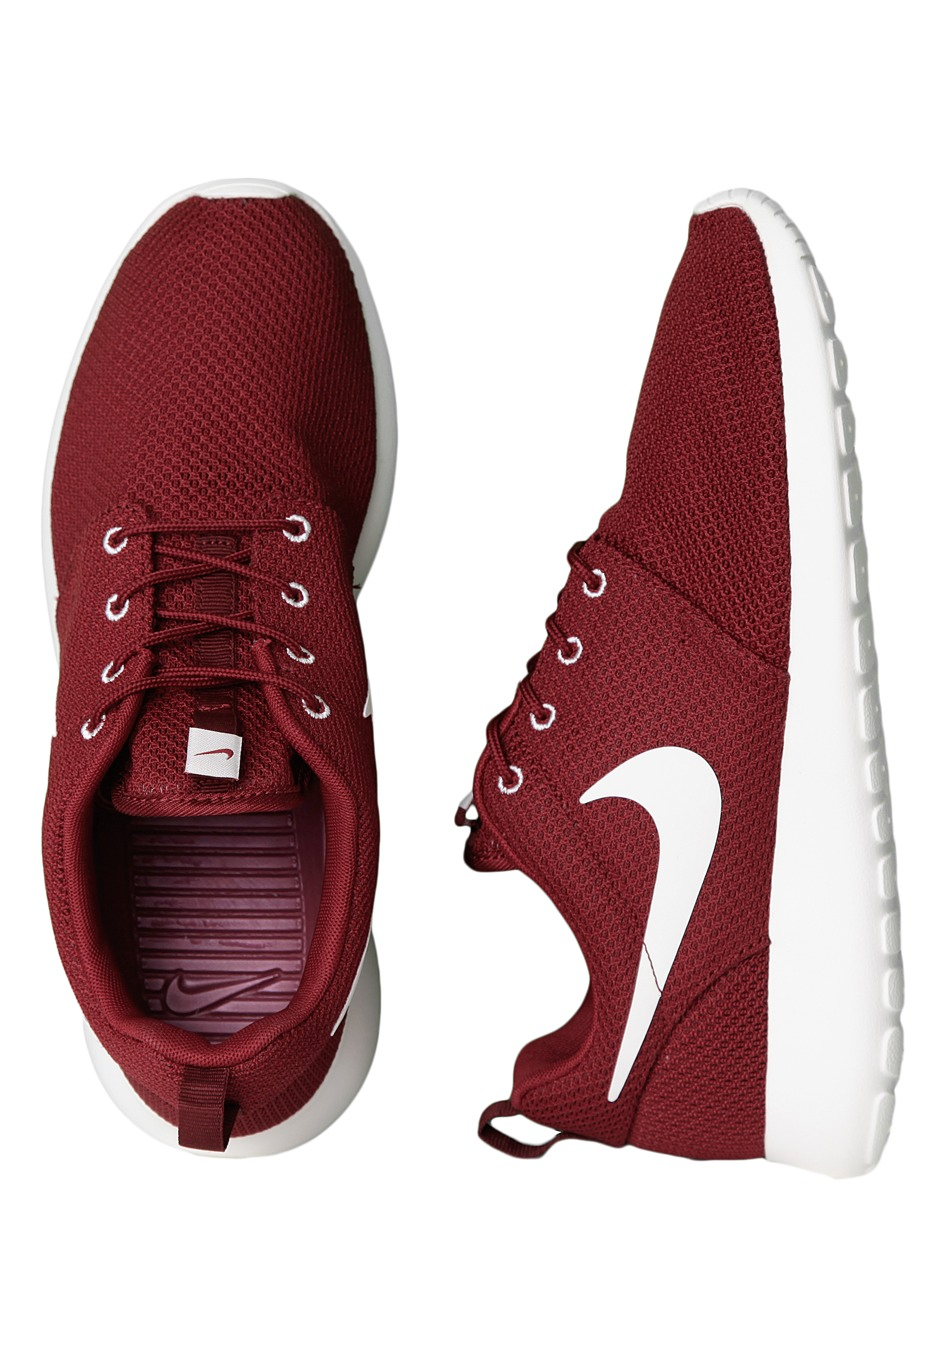 grossiste 6570d 45646 Nike - Roshe Run Team Red /Sail - Shoes